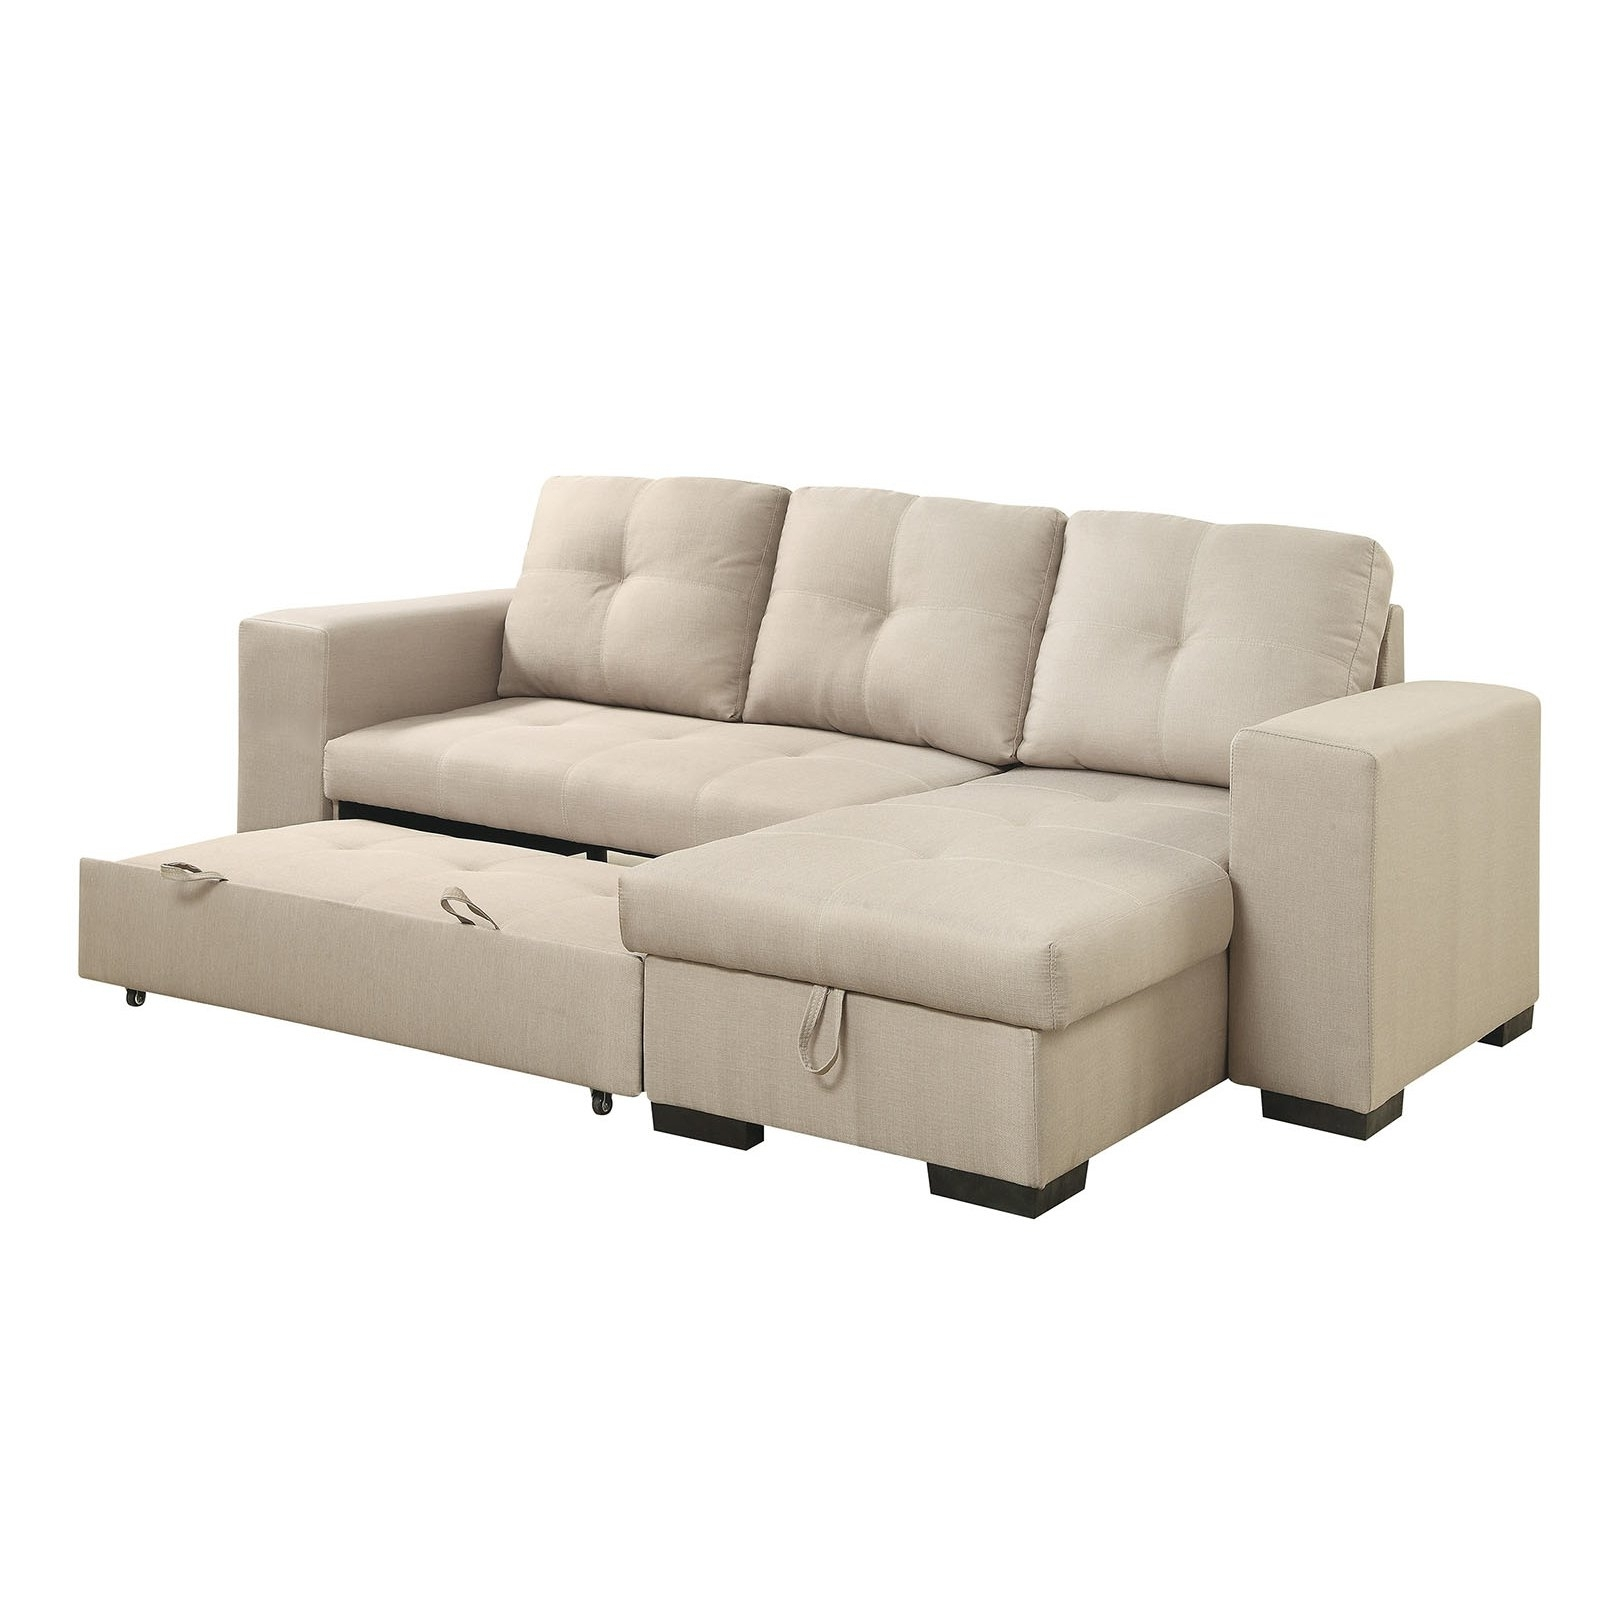 Cream Chaise Lounges Throughout Newest Living Room Lounger – Zhis (View 13 of 15)